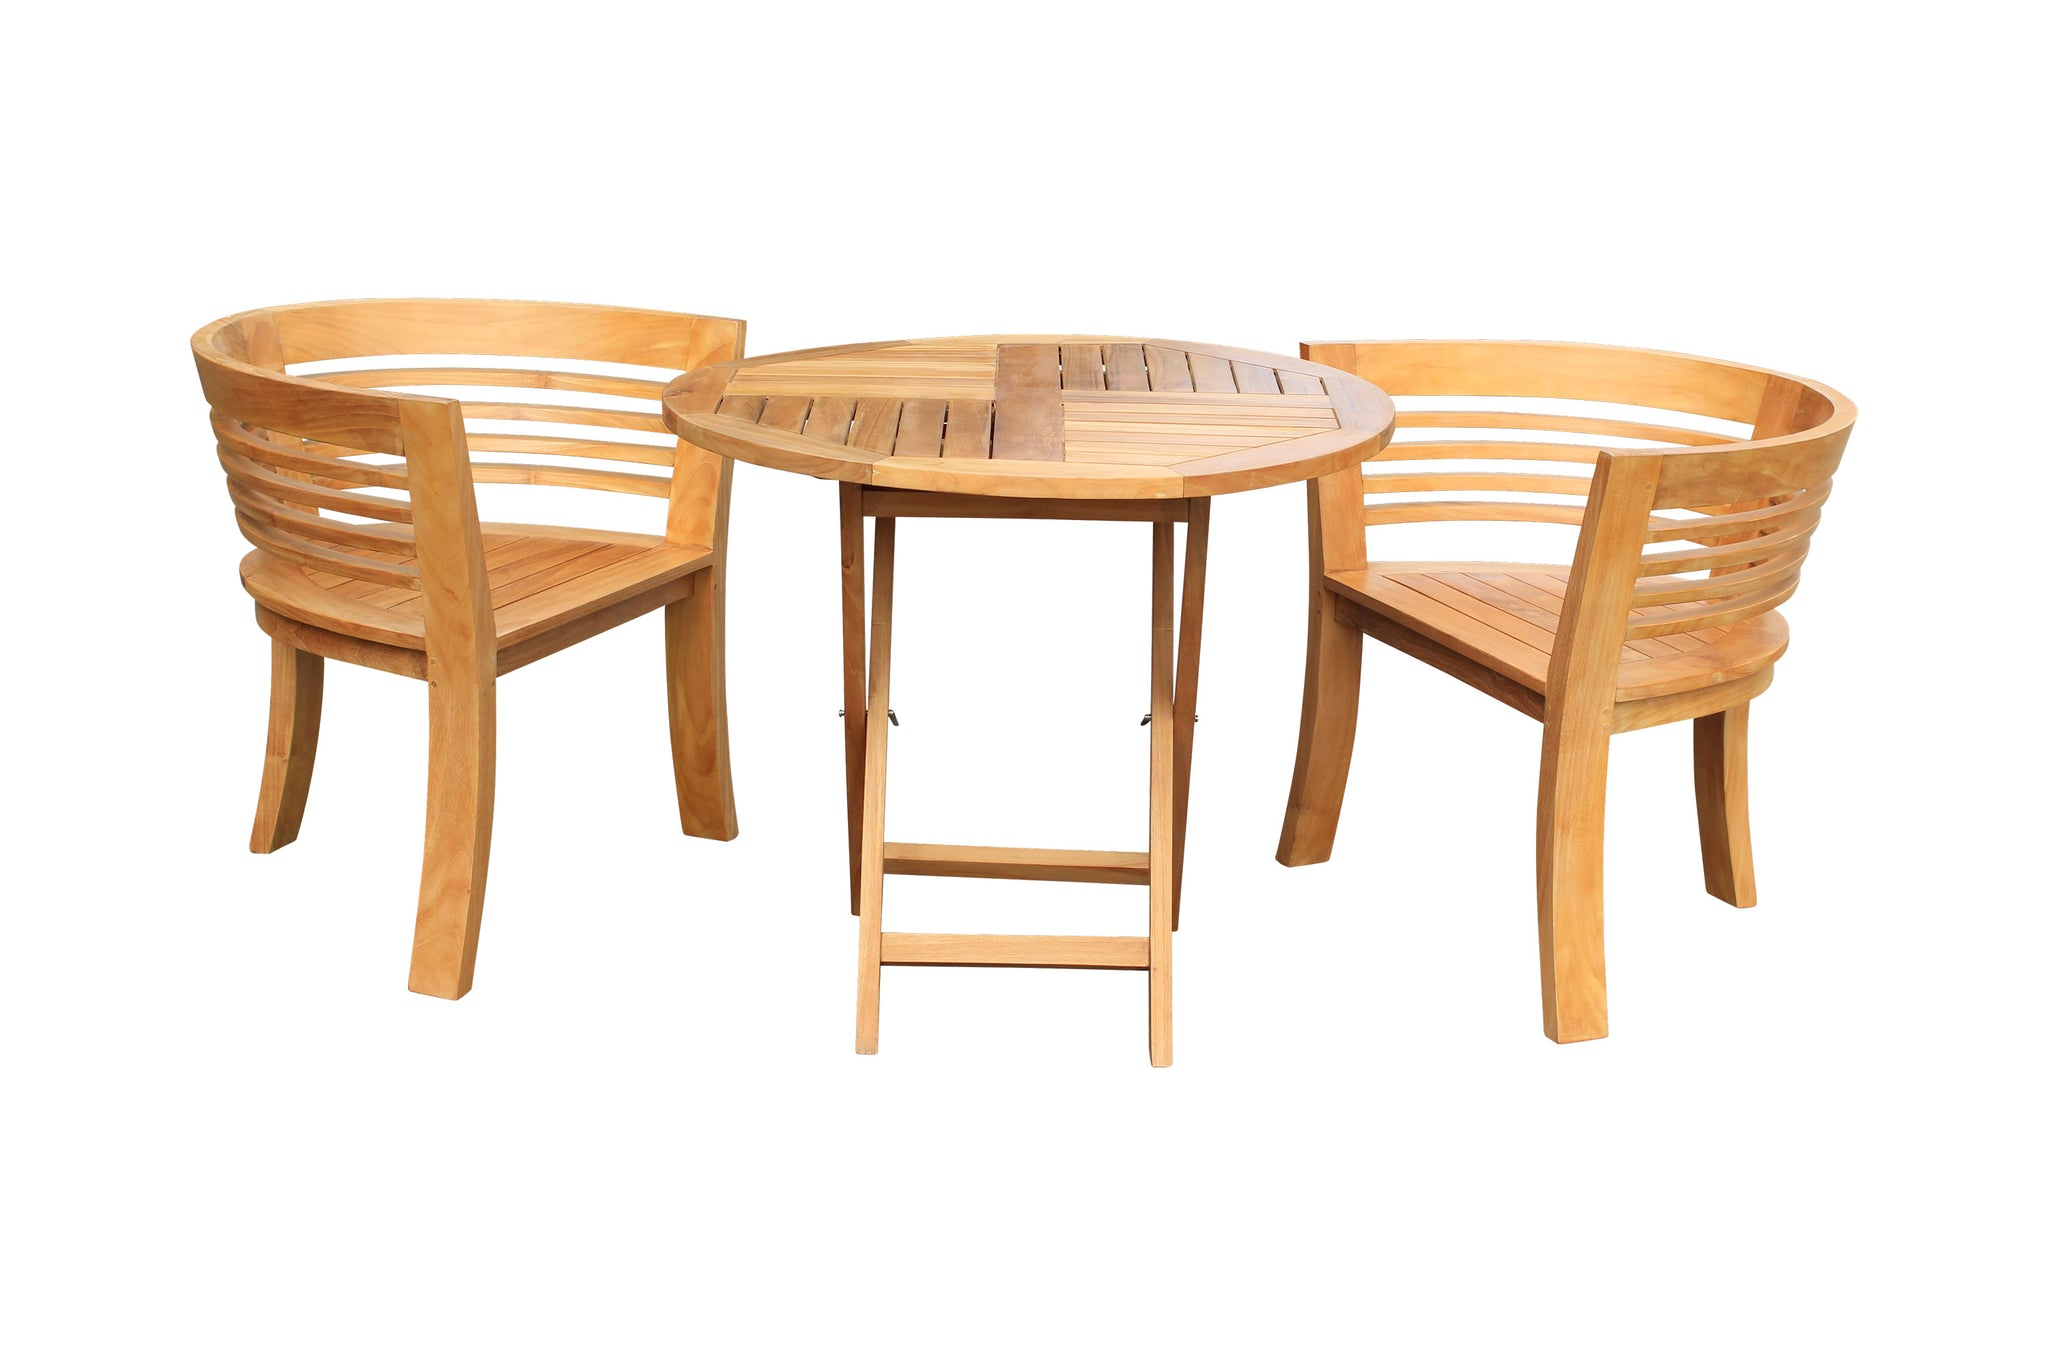 Picture of: 3 Piece Teak Wood California Half Moon Patio Dining Set 2 Chairs And La Place Usa Furniture Outlet